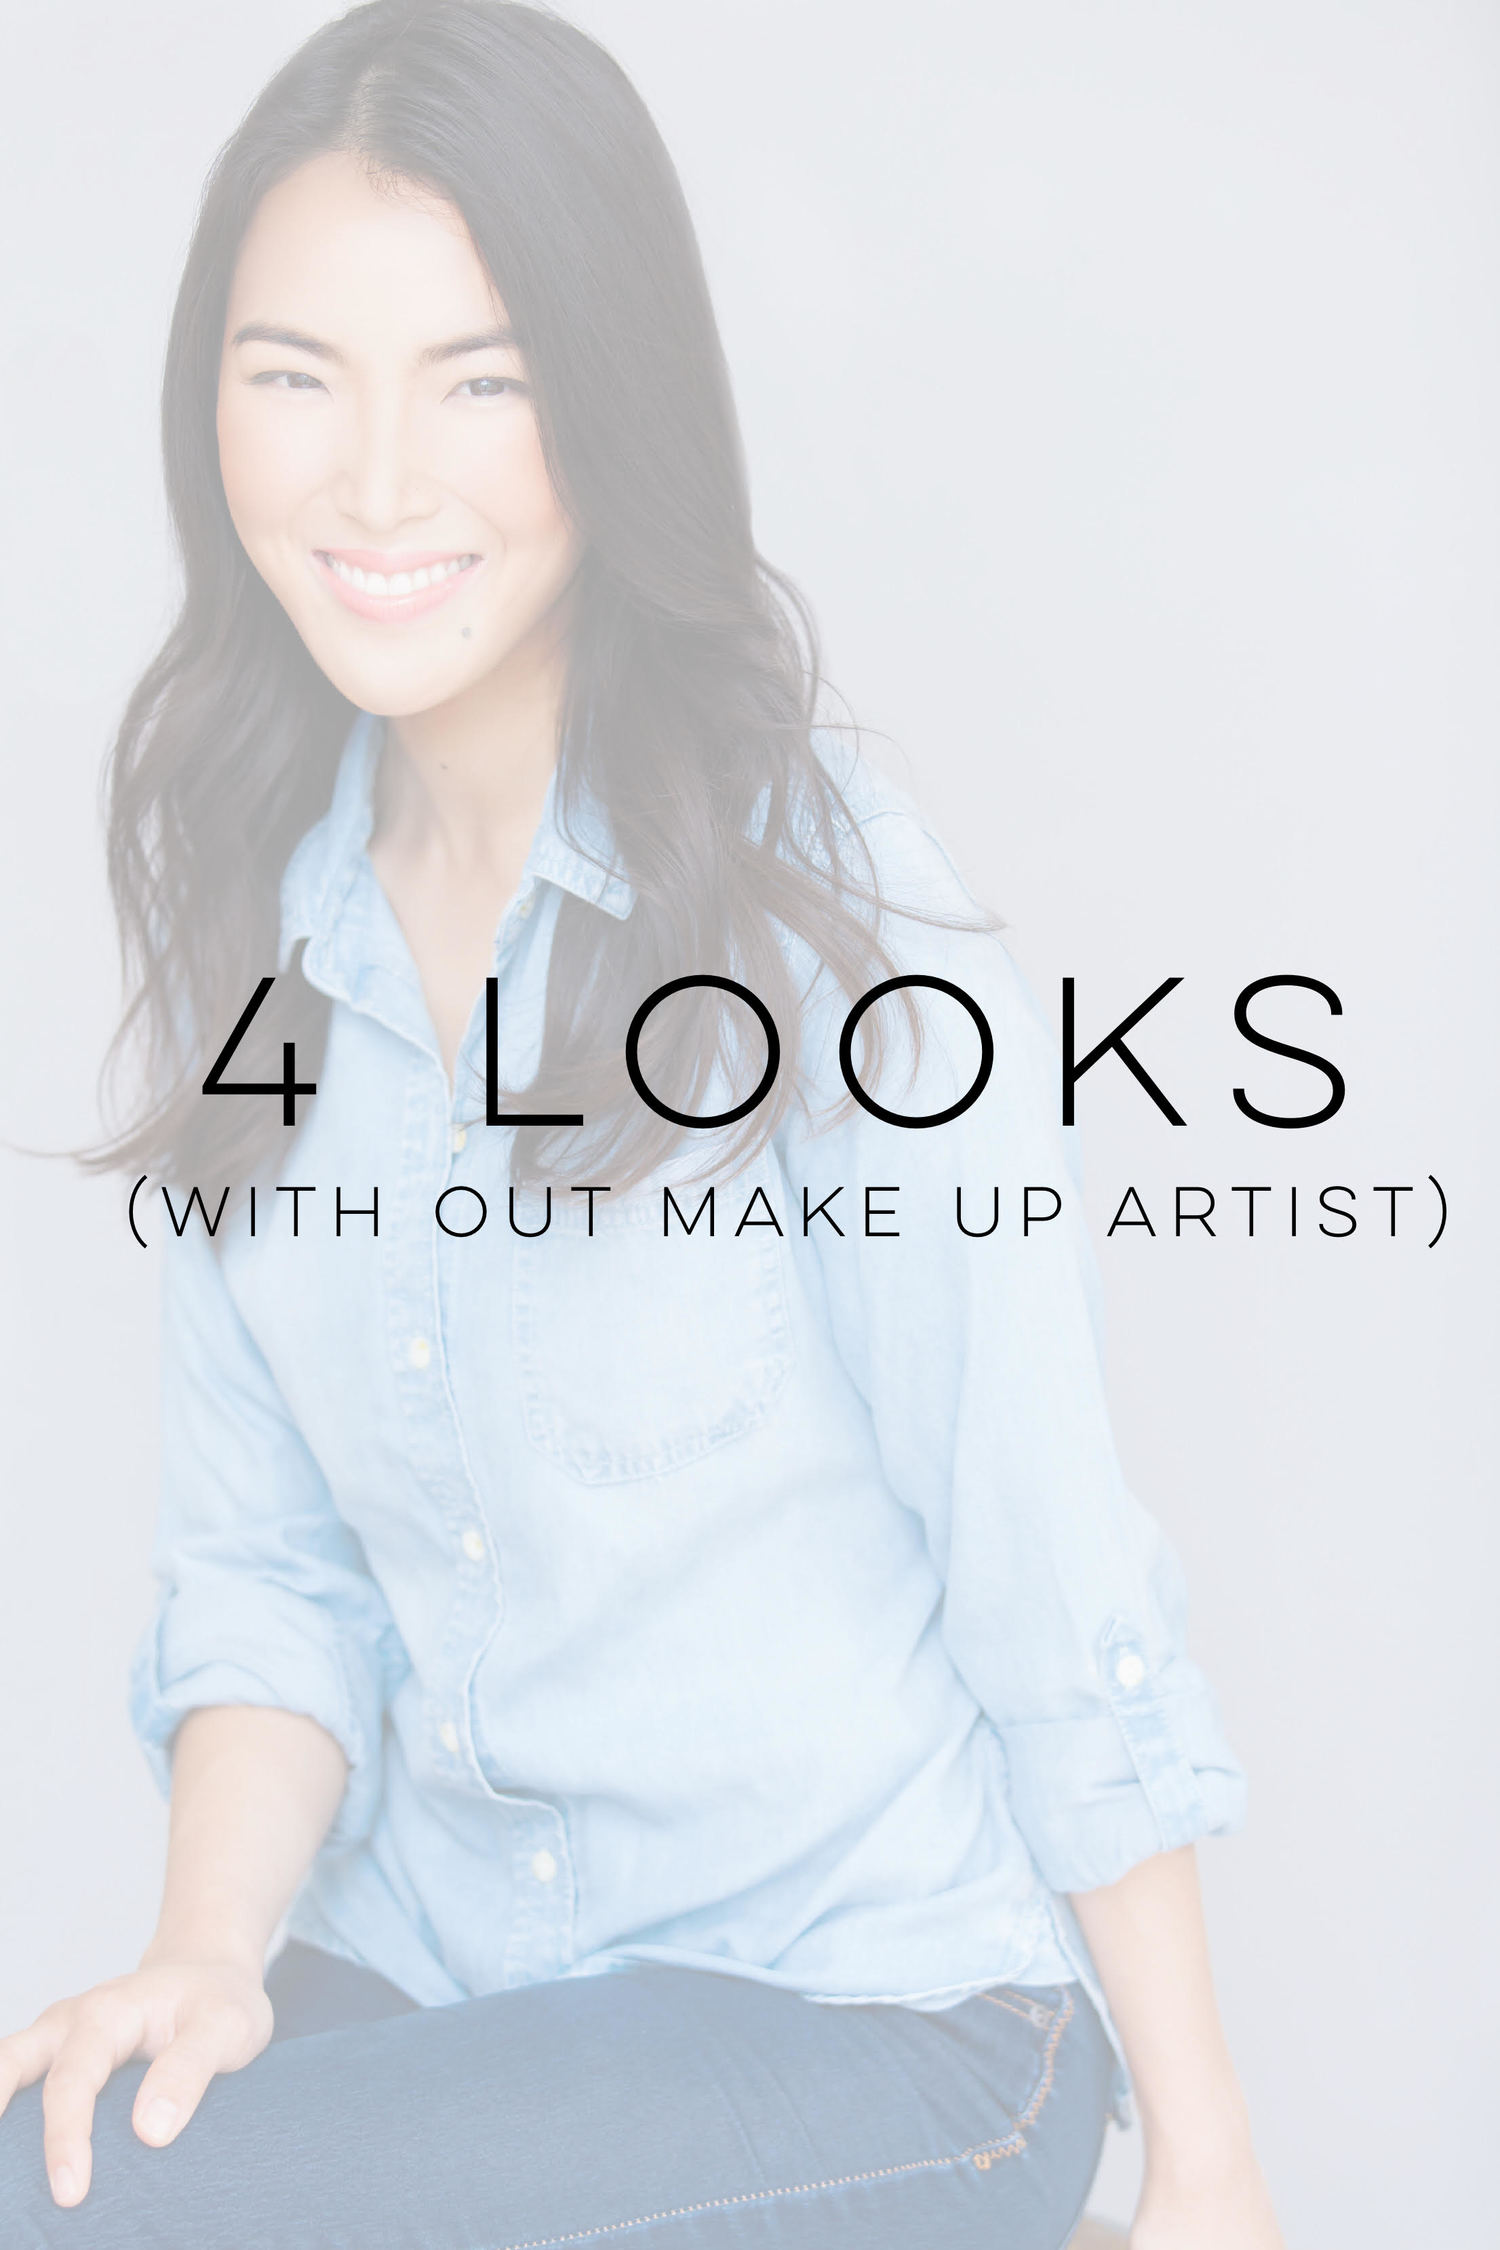 4 looks with OUT make up artist $225